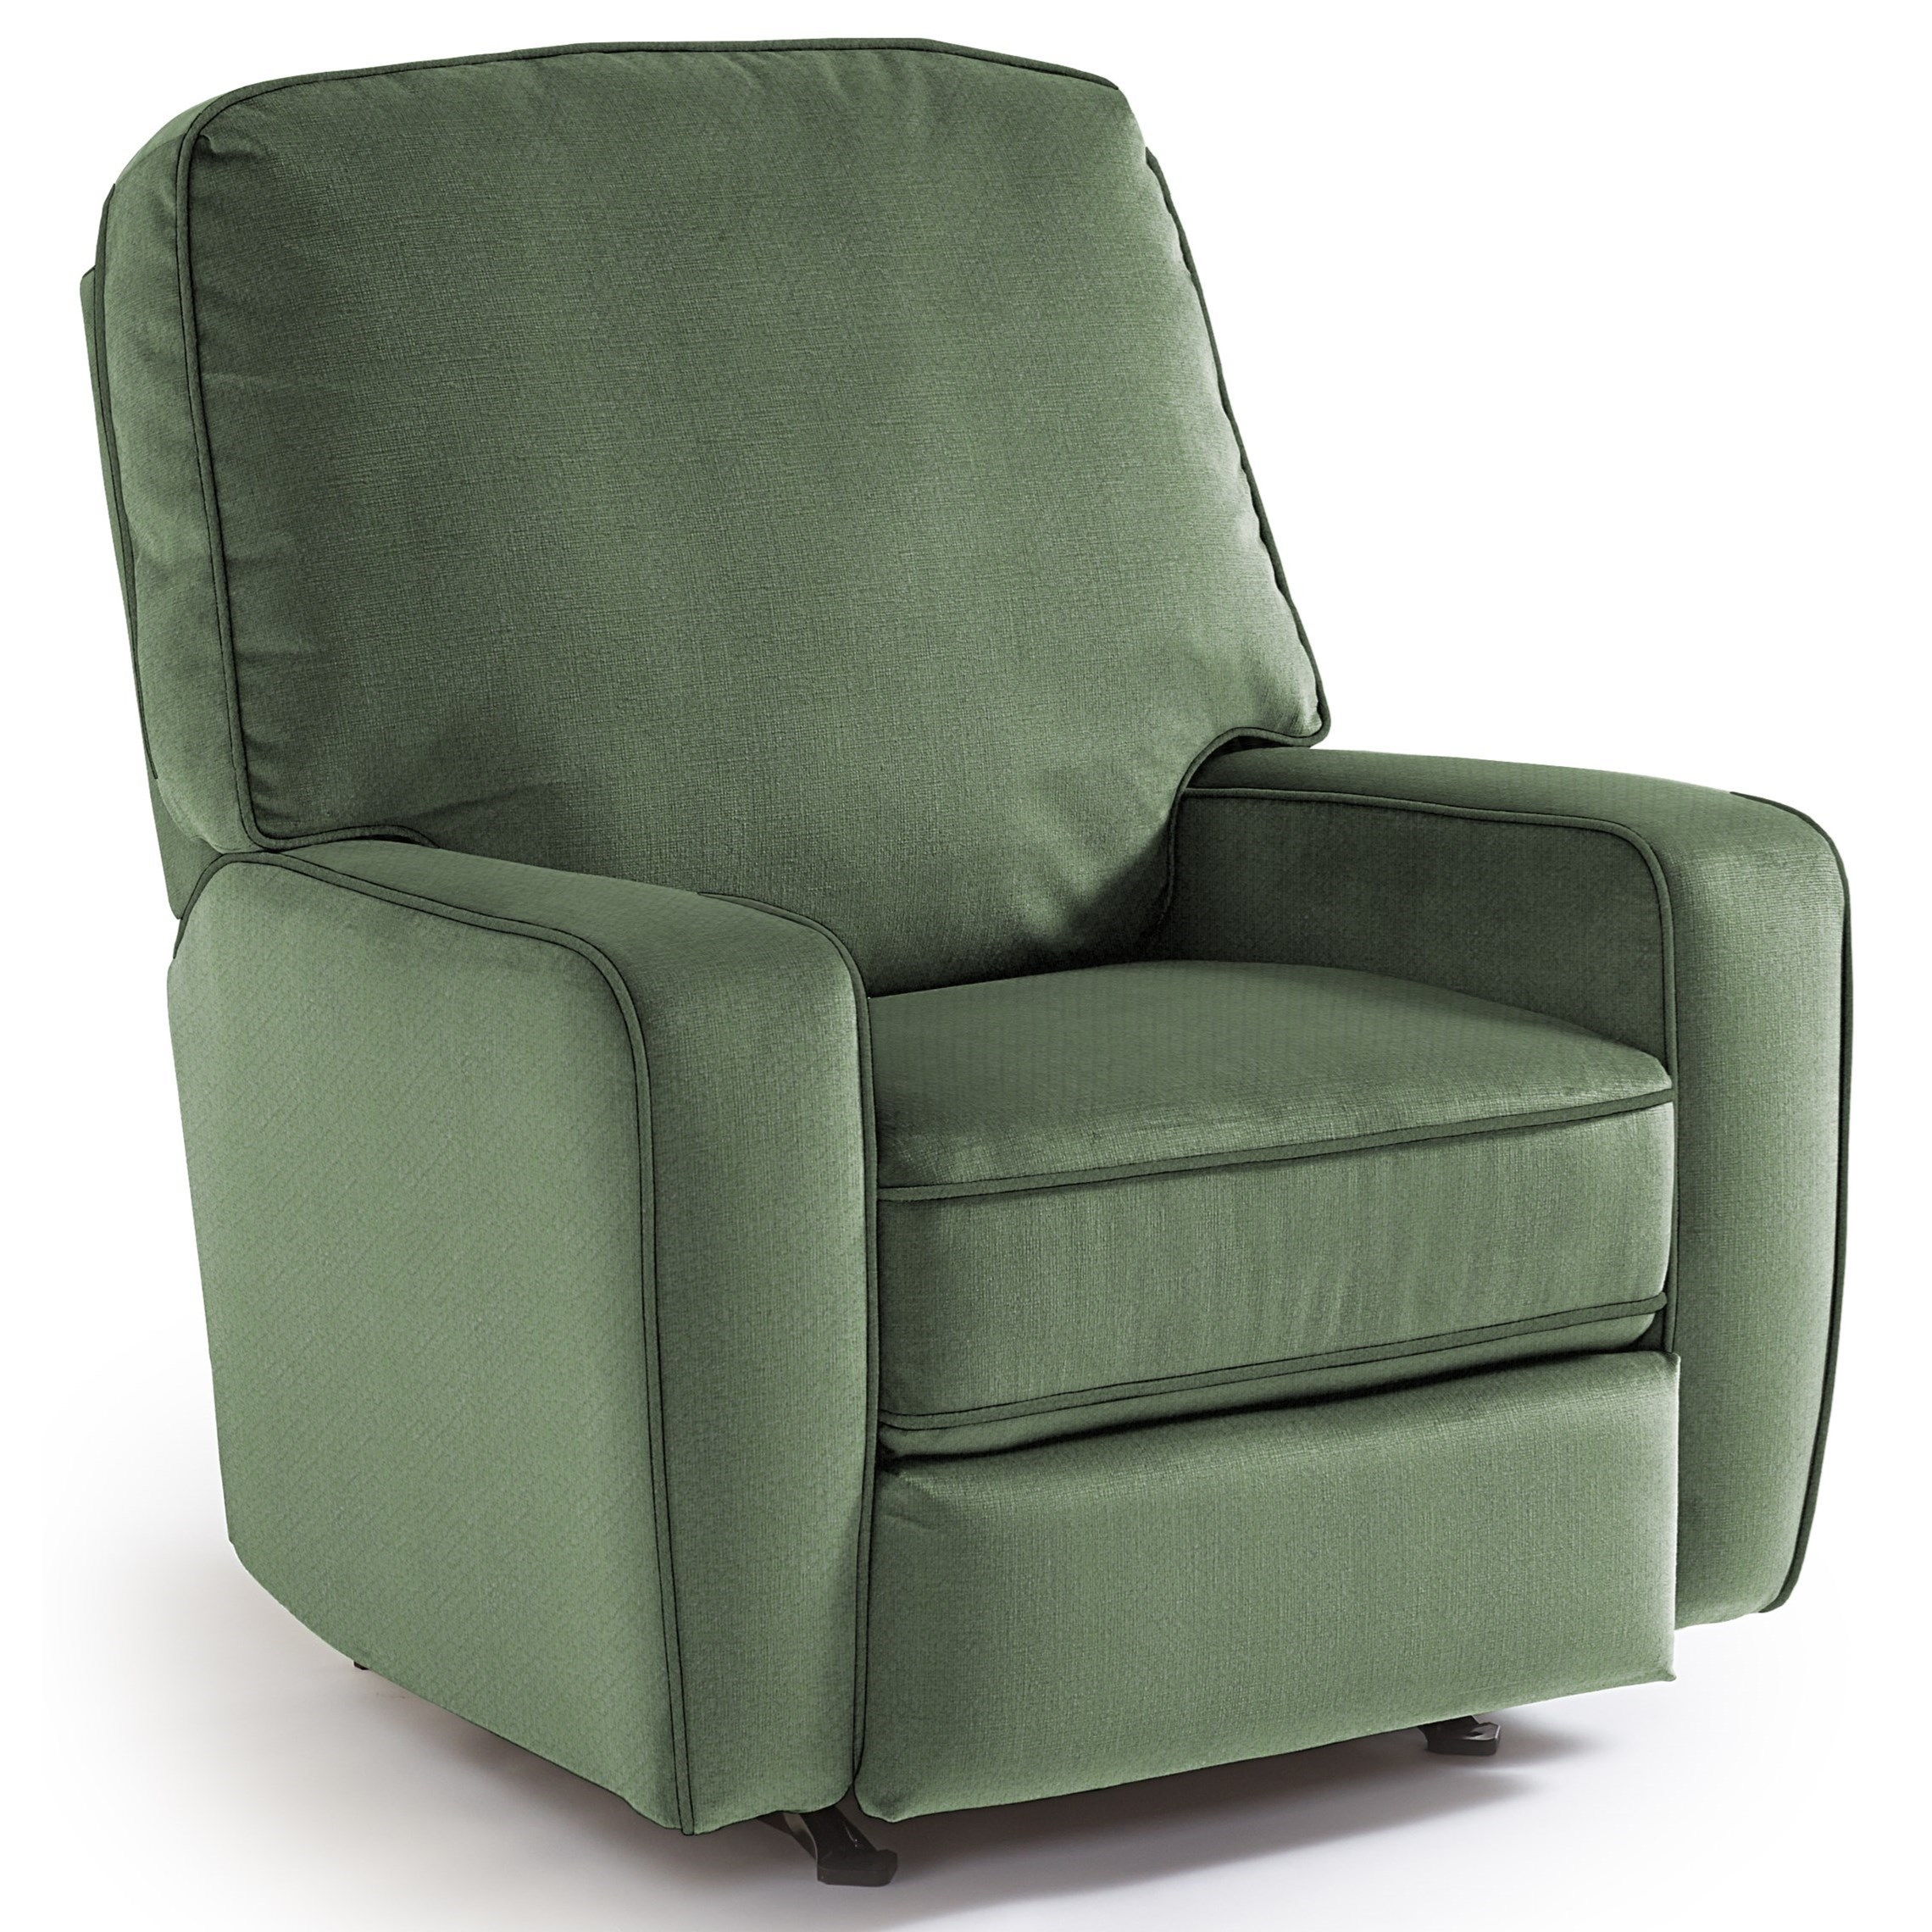 Medium Recliners Bilana Swivel Glider Recliner by Best Home Furnishings at Rife's Home Furniture